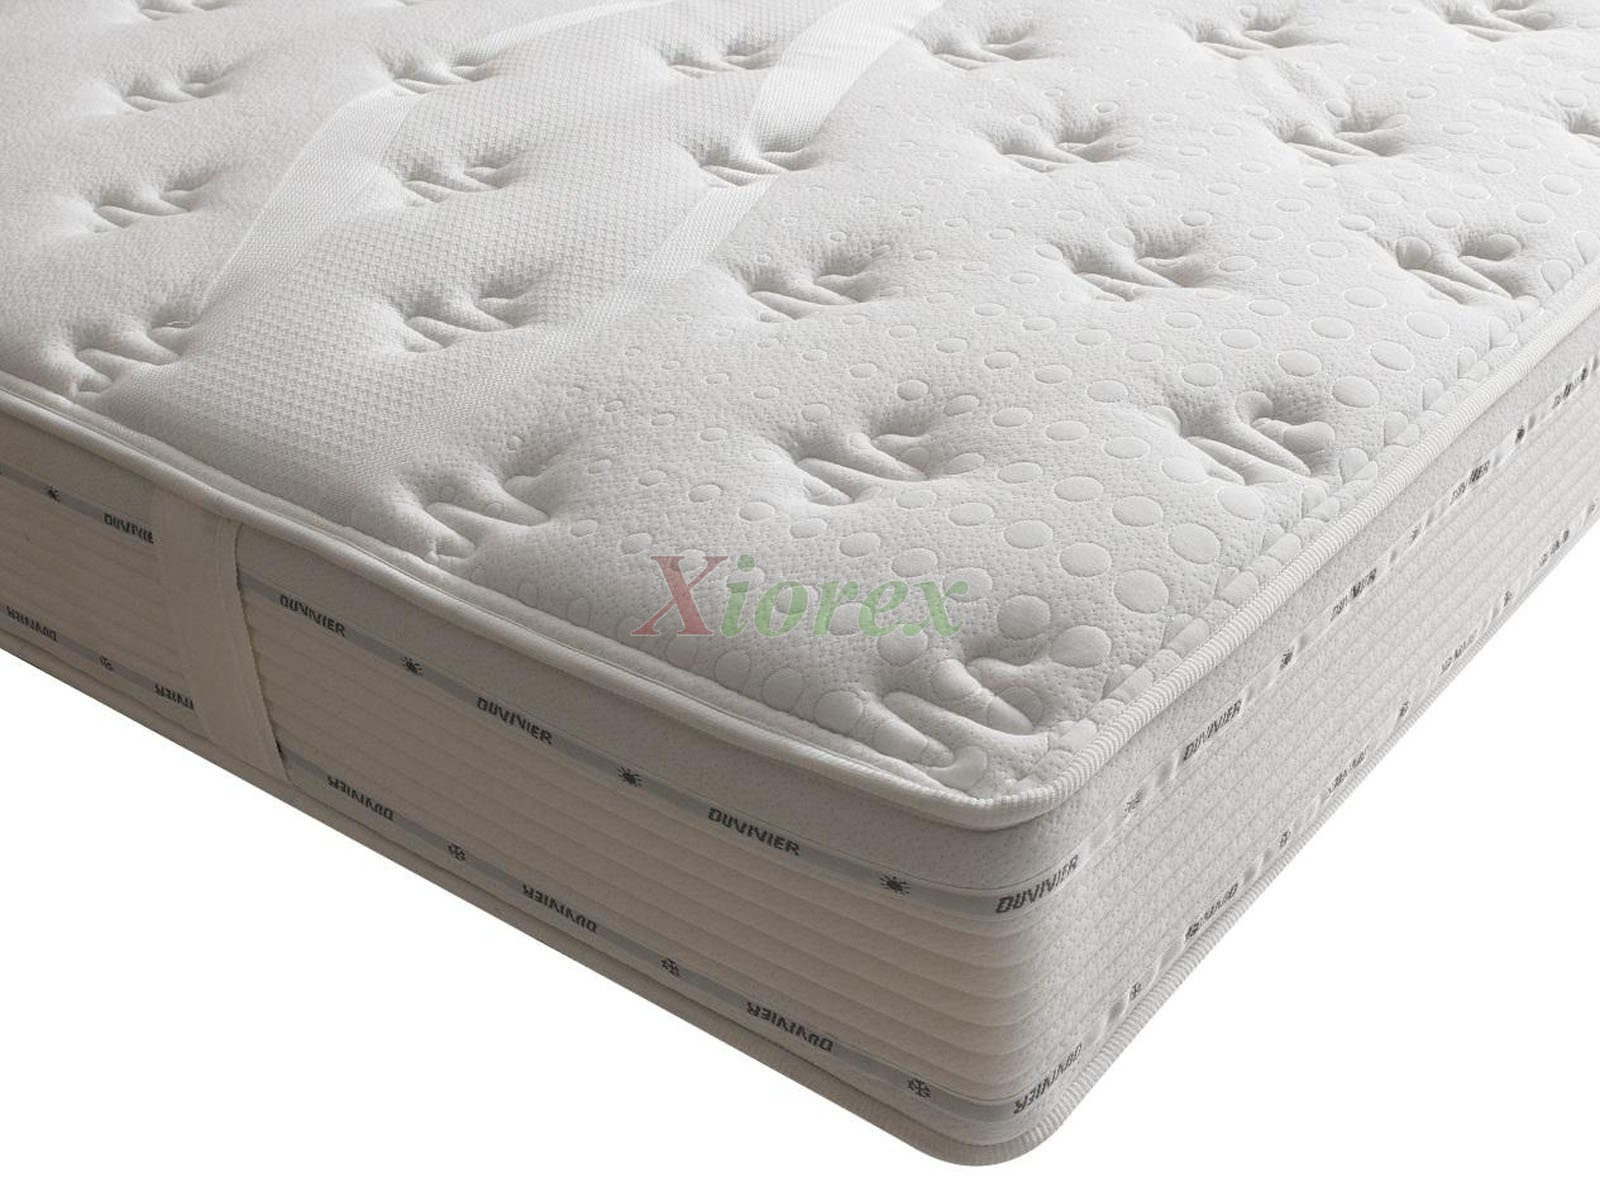 astree spring mattress gami 5zone independent pocket coil mattress - Spring Mattress